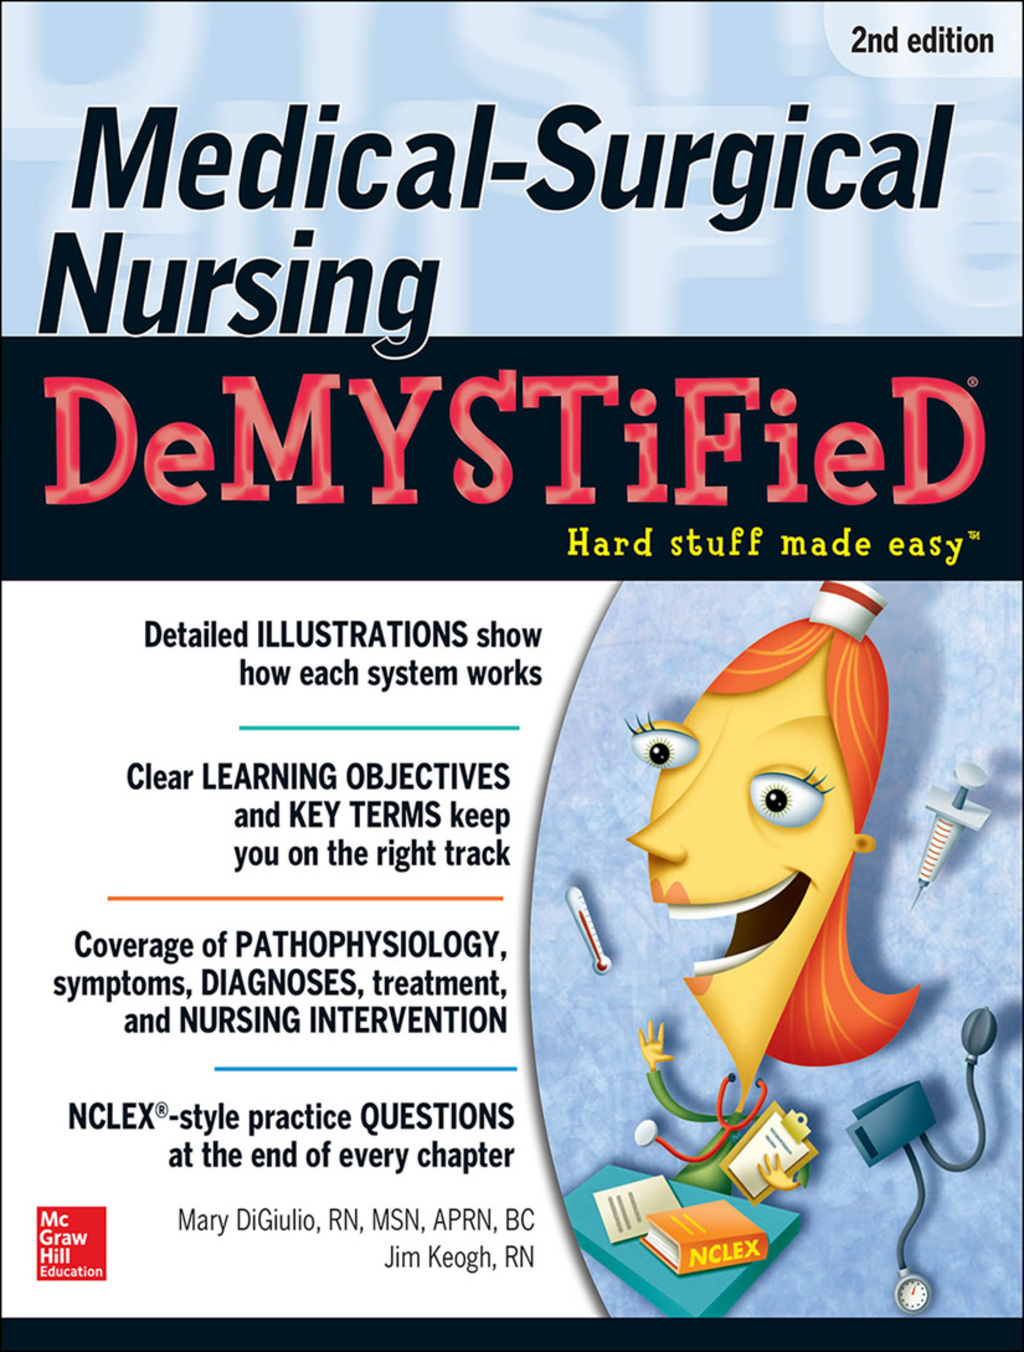 Medical-Surgical Nursing Demystified Second Edition (eBook) (9780071773423)  photo